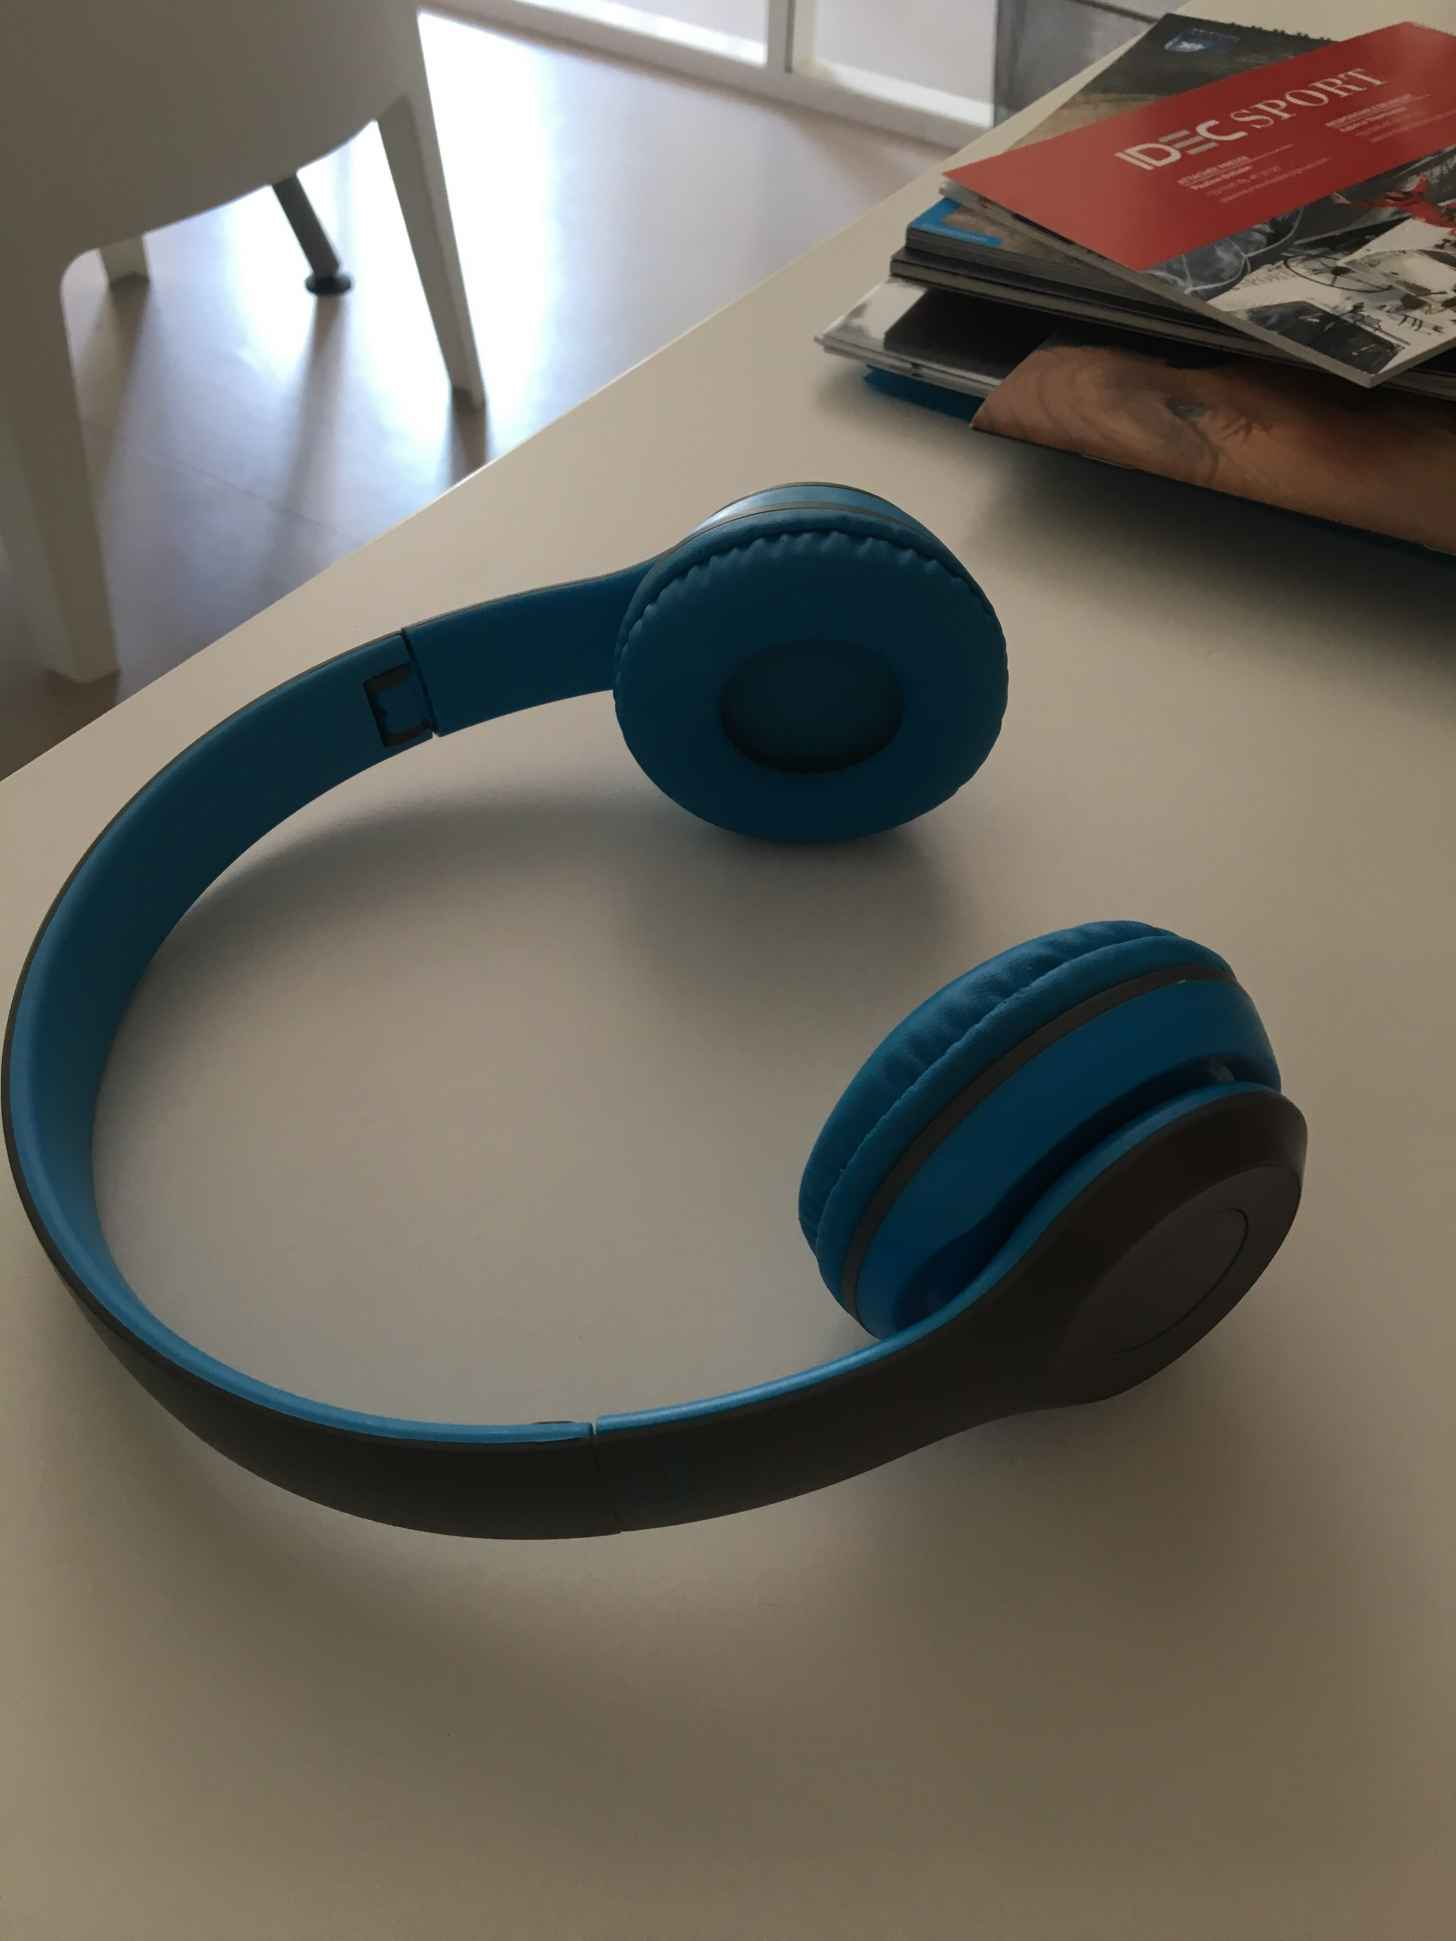 Trouvé - Casque audio - Rennes, France - Sherlook.fr